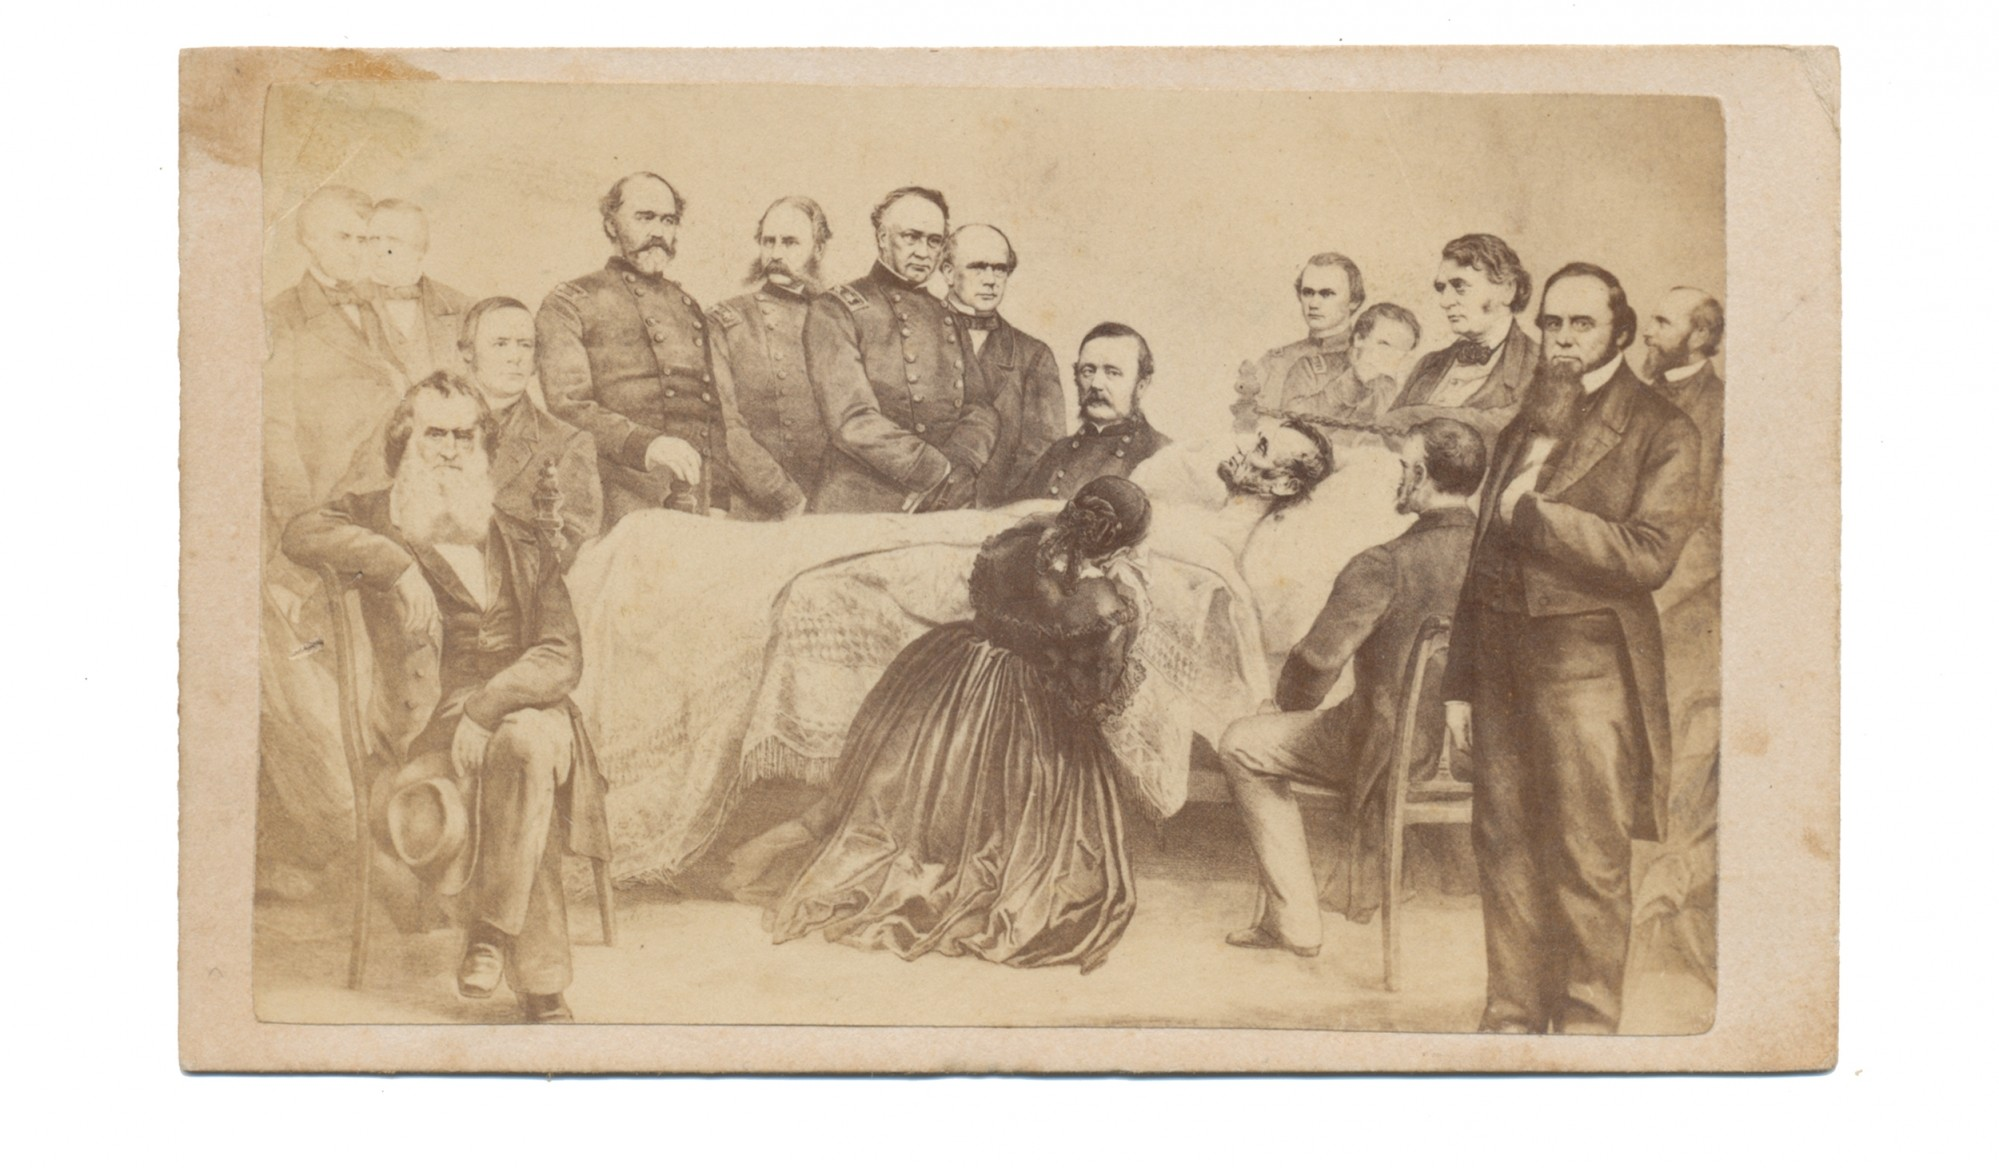 LITHOGRAPHED CDV OF PRESIDENT LINCOLN'S DEATHBED